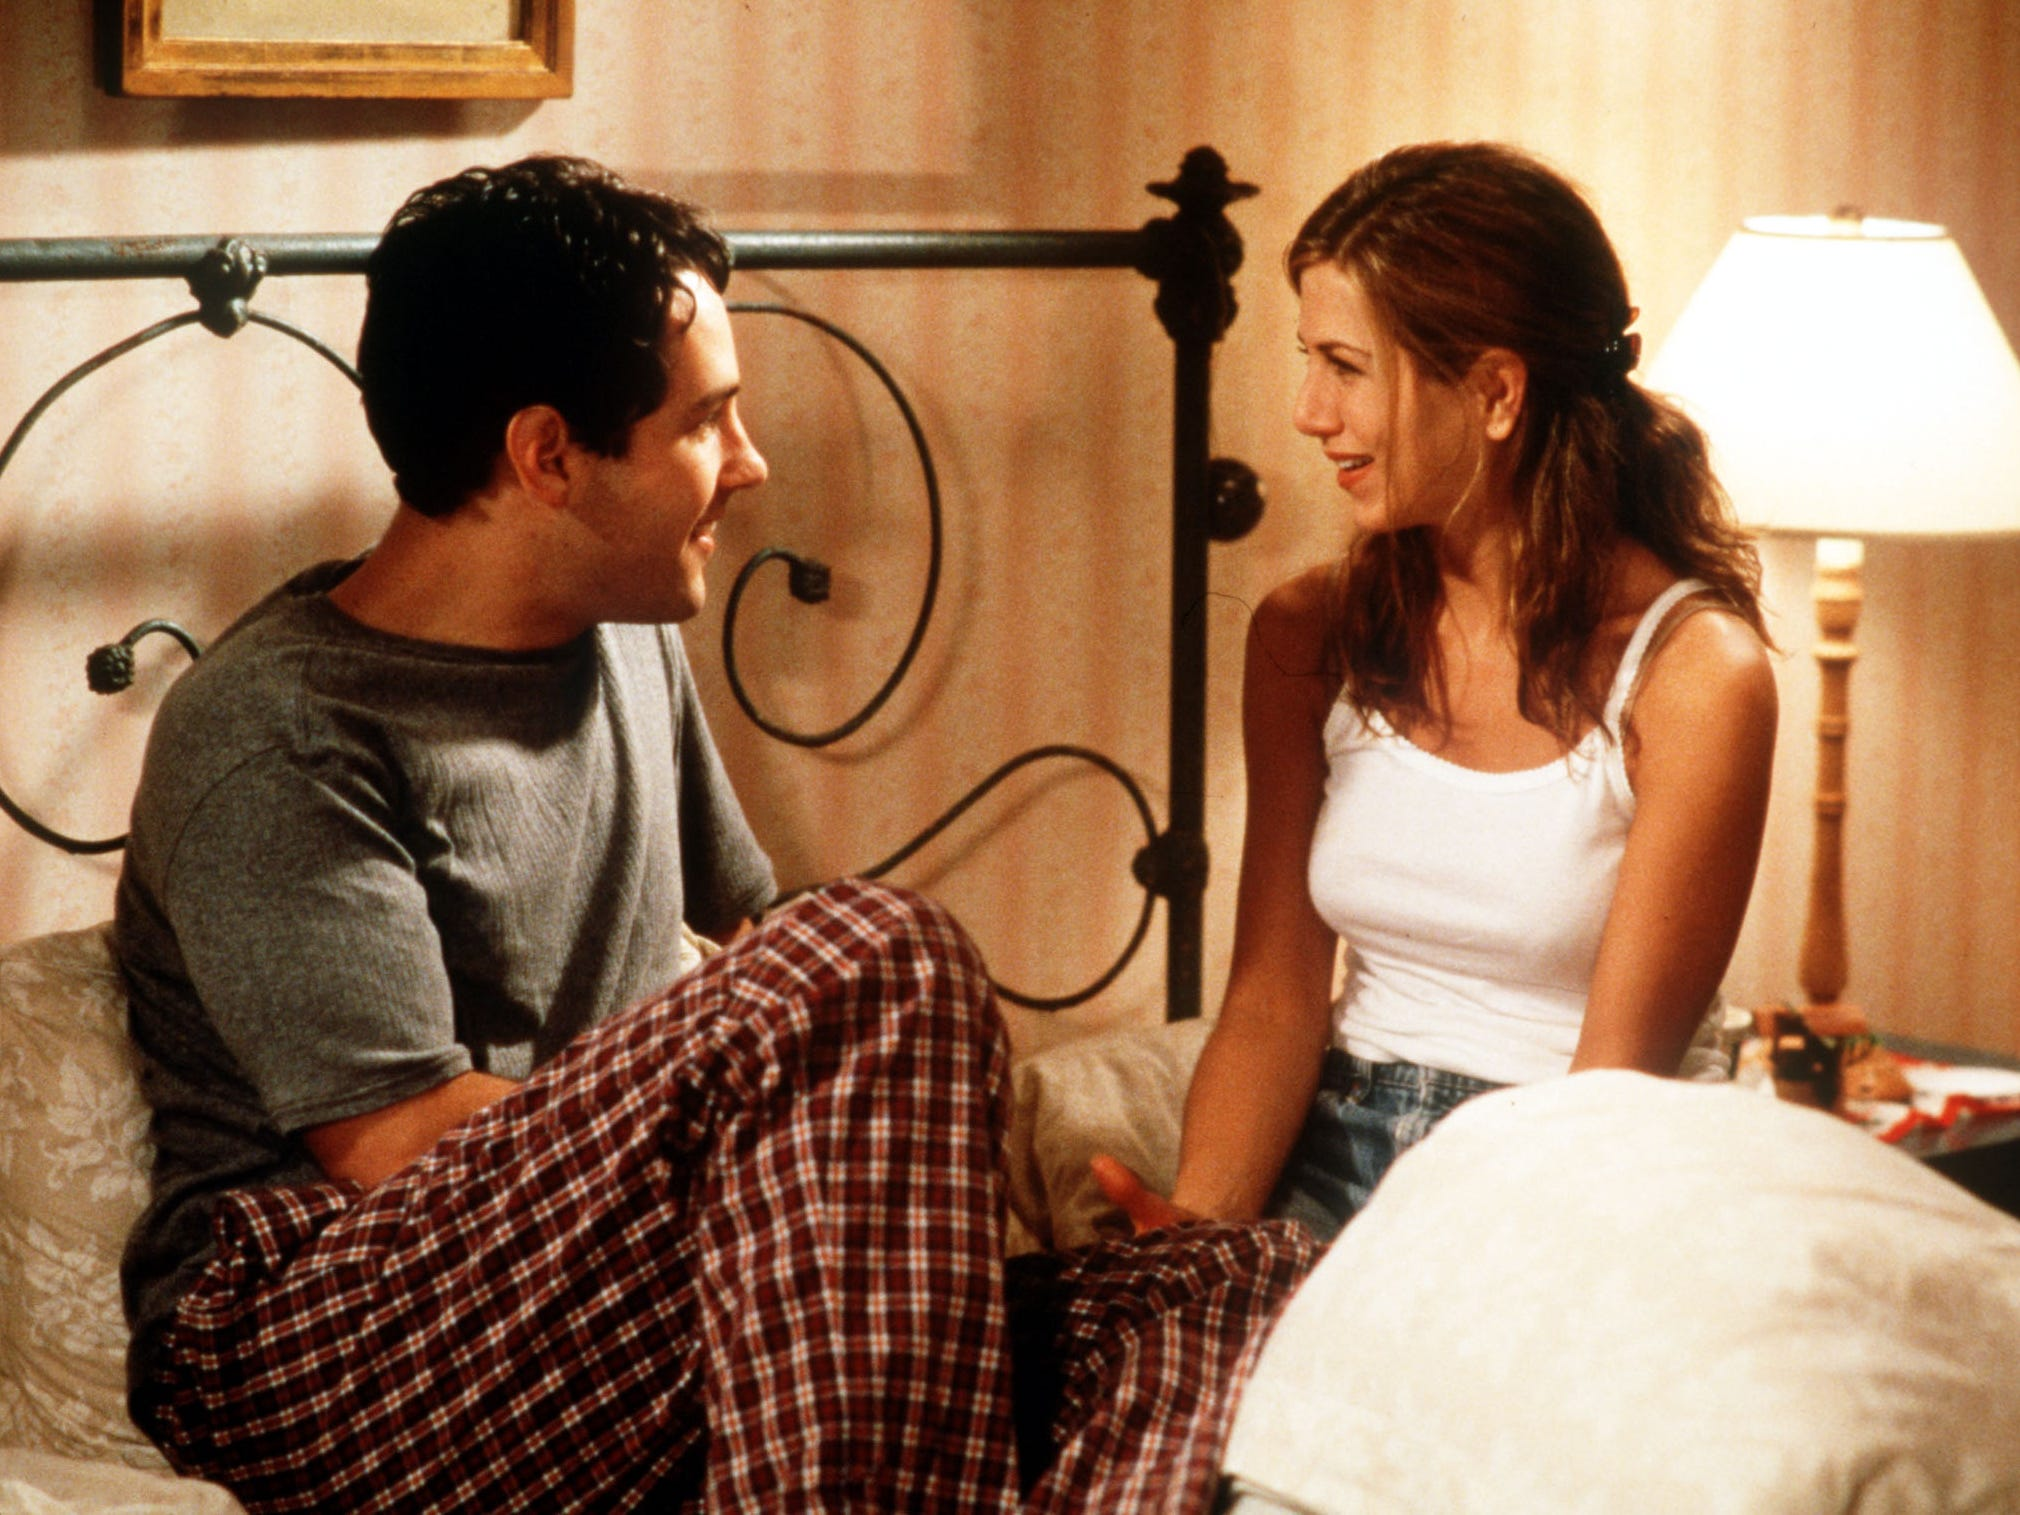 """In 1998's """"the Object of My Affection,"""" Aniston starred opposite Paul Rudd as a pregnant woman who falls for her gay best friend."""